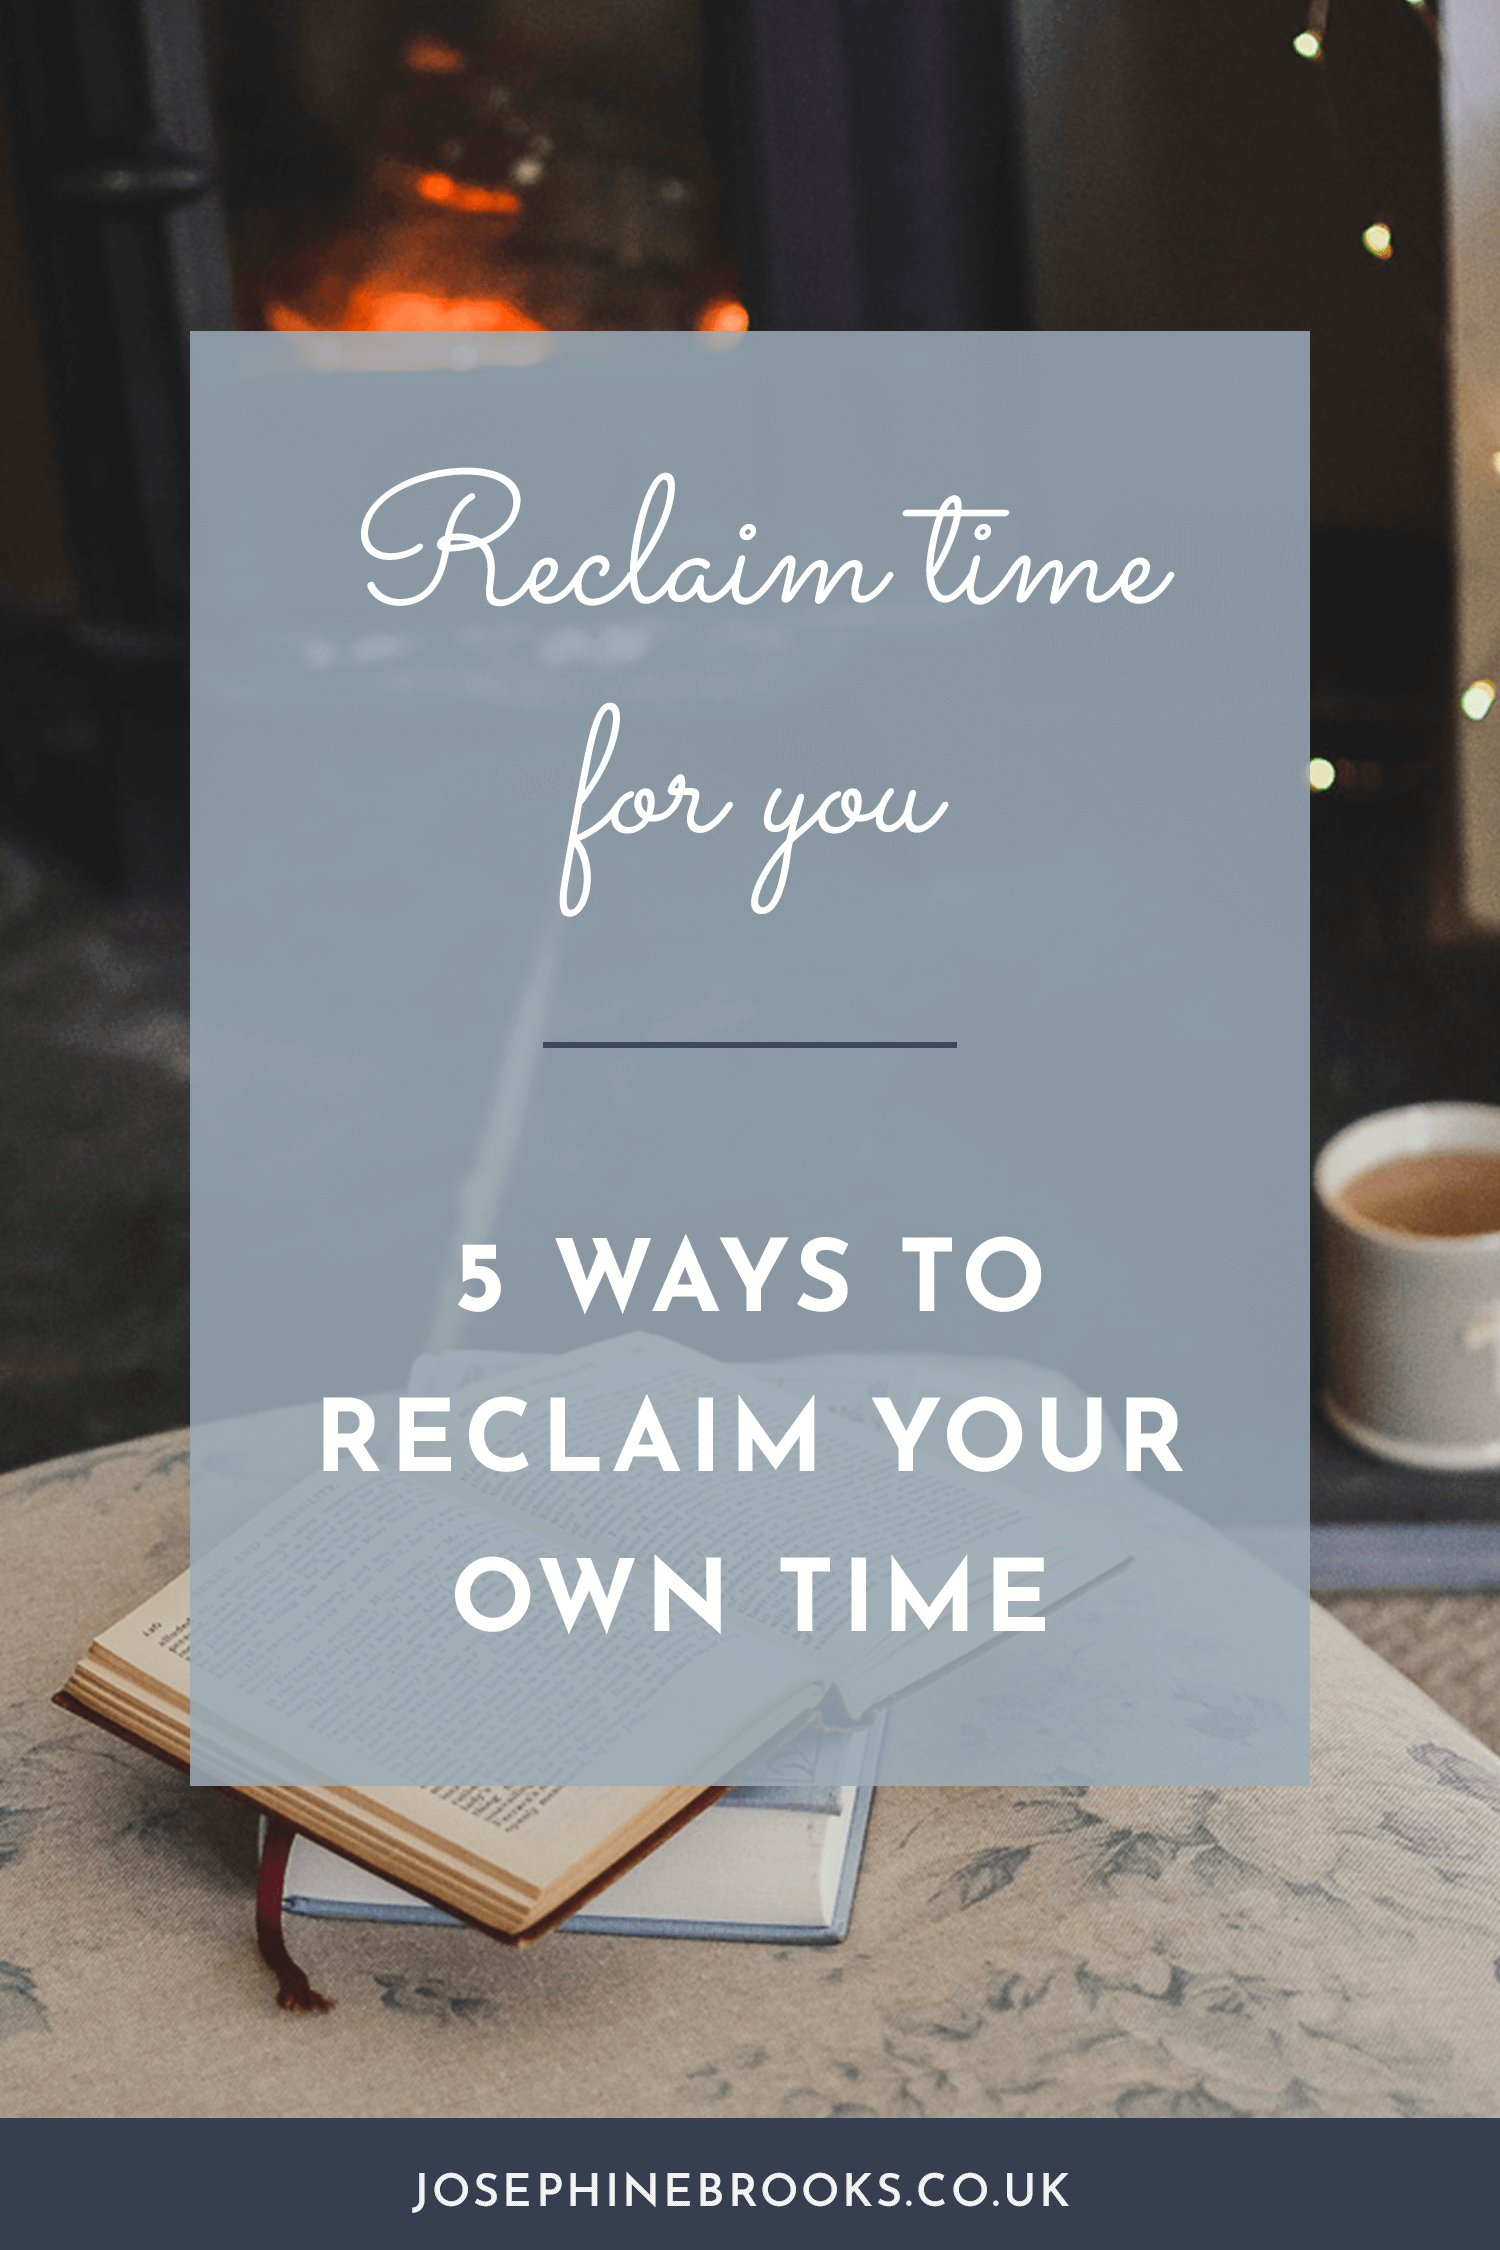 Reclaiming your own time and making more time for your self-care, How to free up more of your time, how to reclaim time | Josephine Brooks